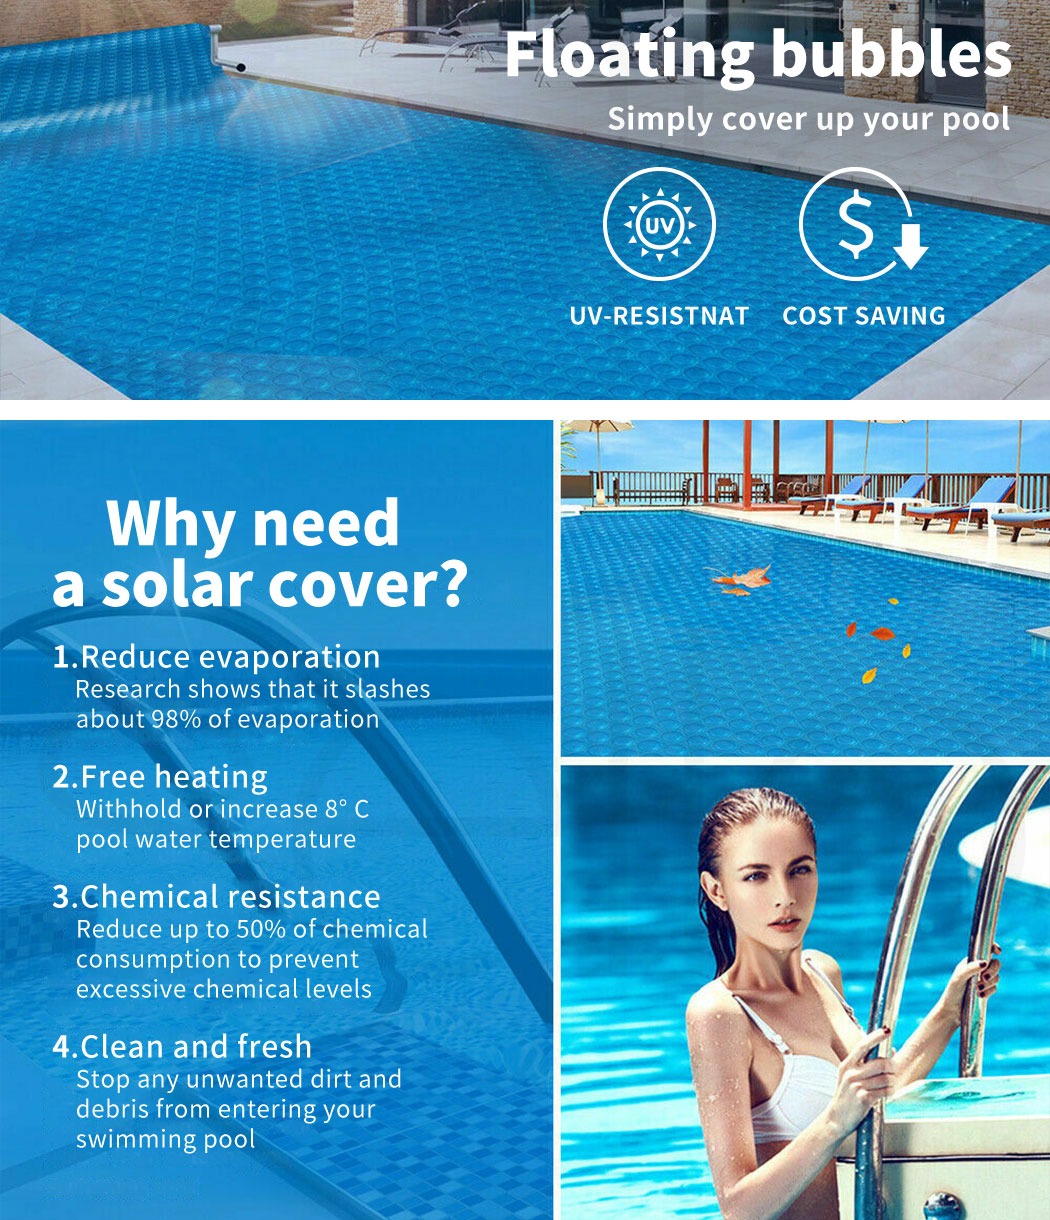 Solar-Swimming-Pool-Cover-400-500-Micron-Outdoor-Bubble-Blanket-Covers-7-Sizes thumbnail 117